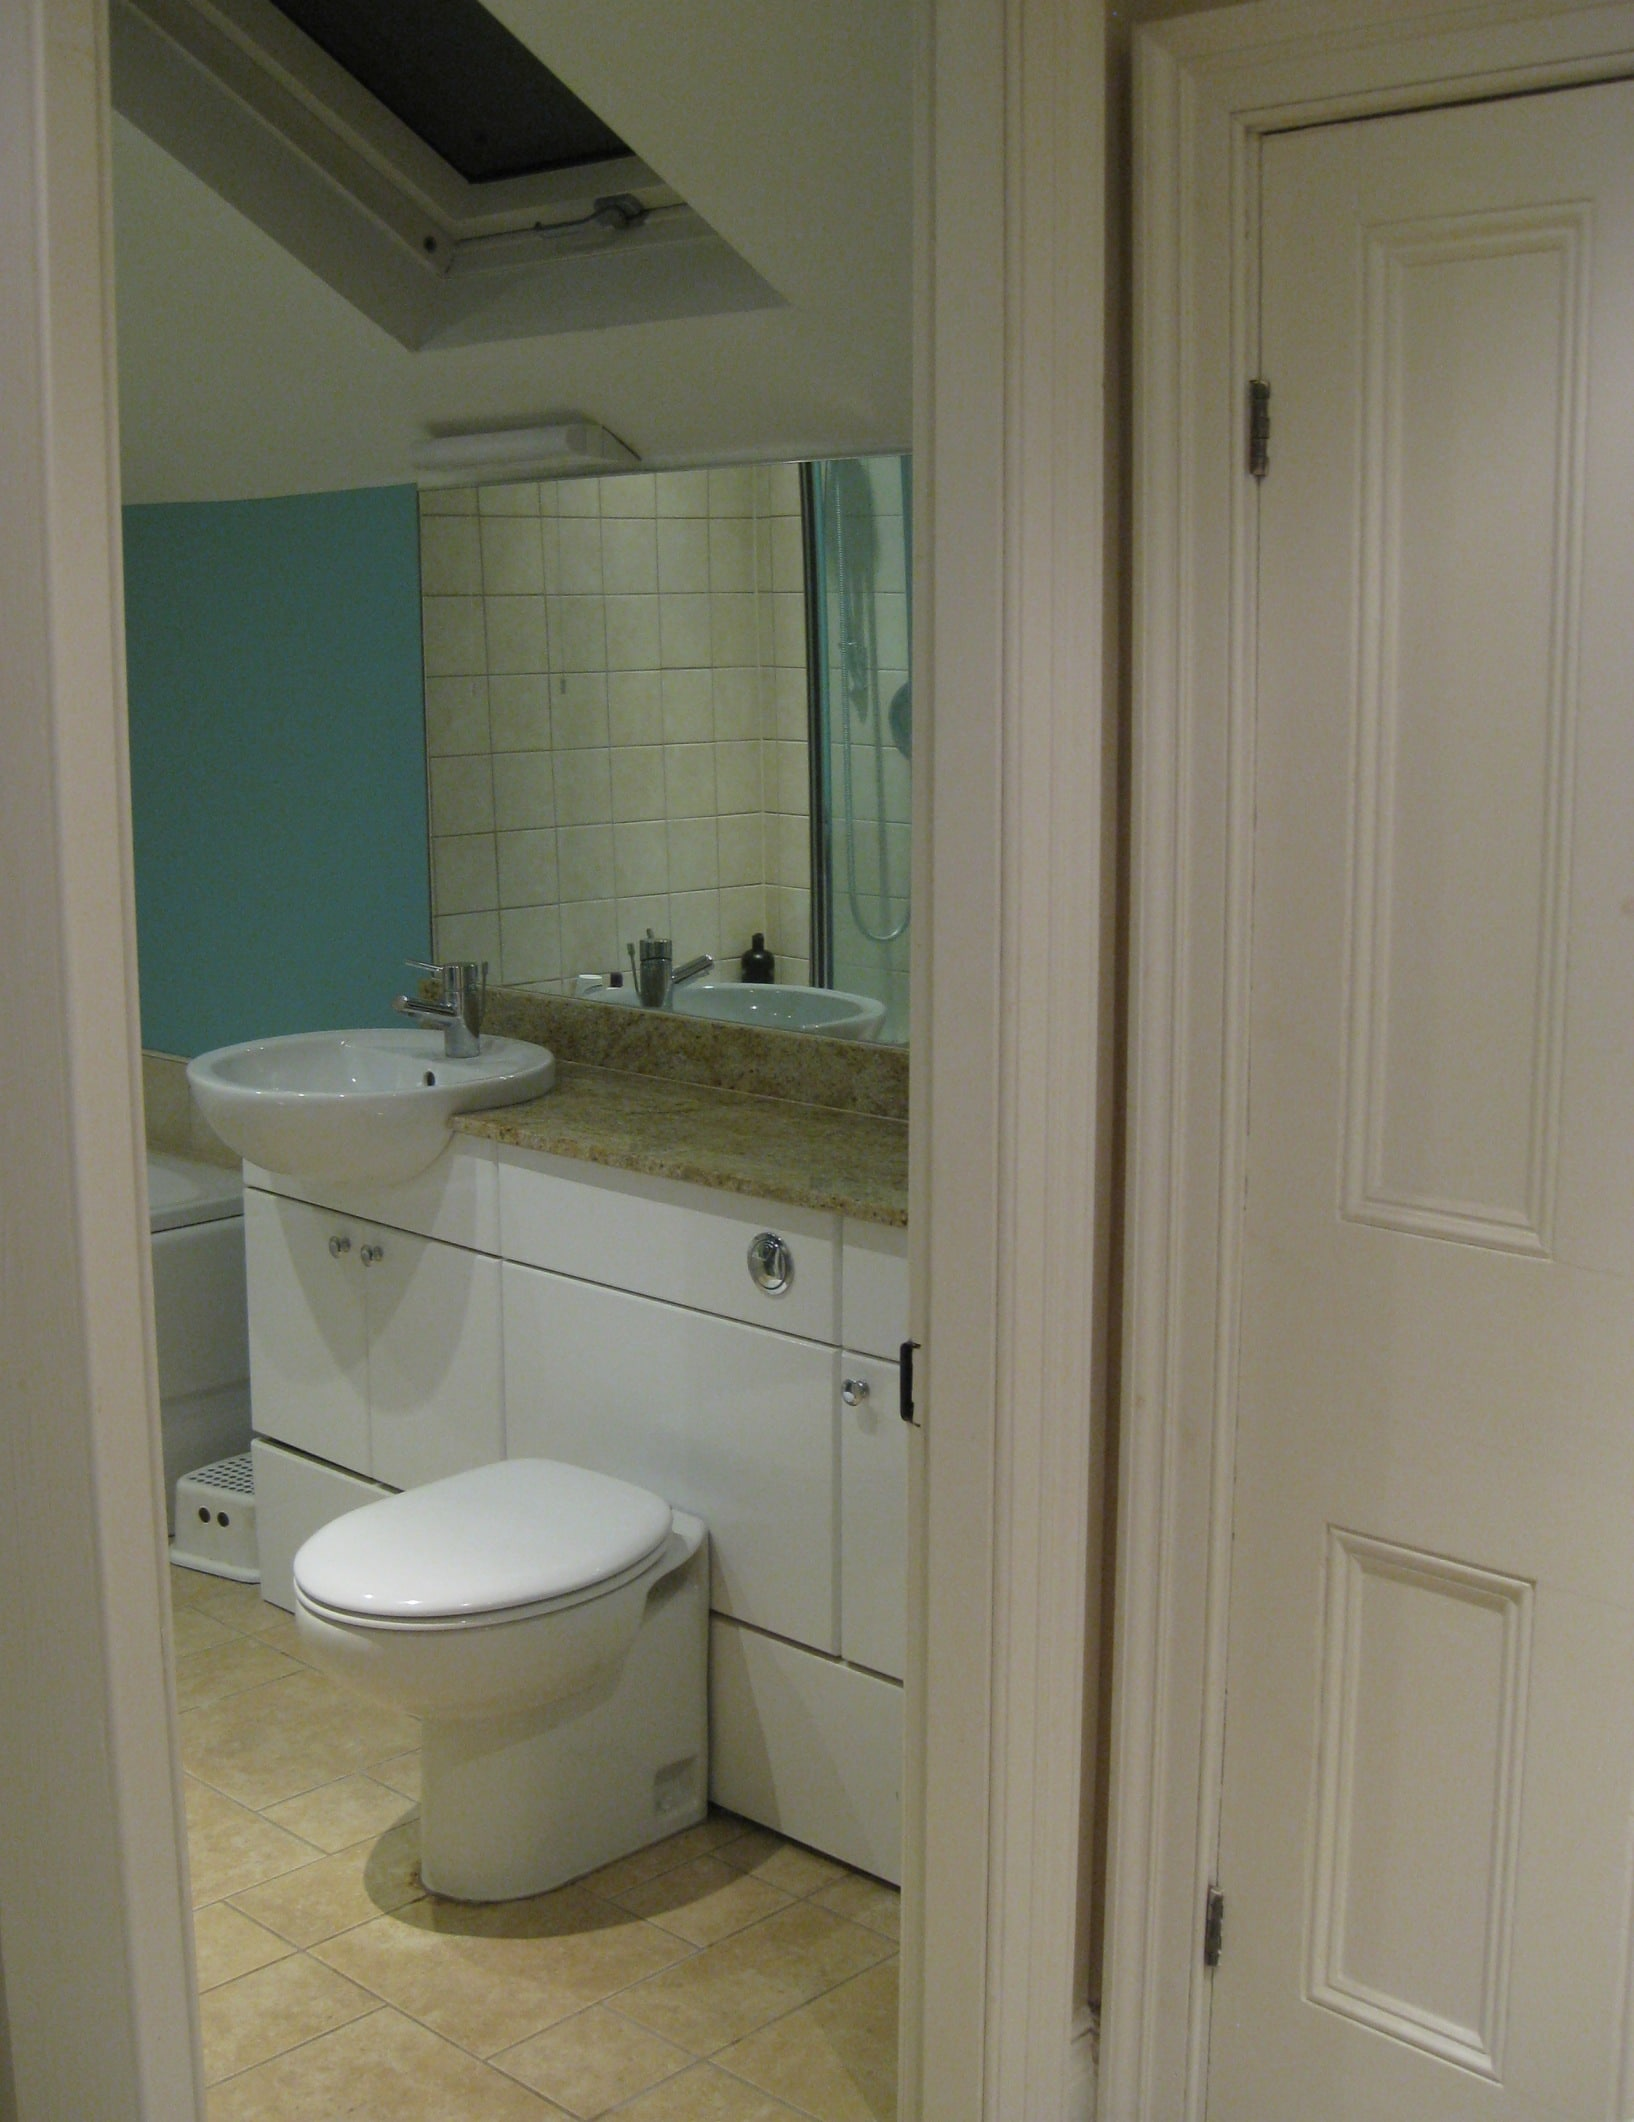 Lymm Guest Bathroom Transforming Homes For Over 30 Years